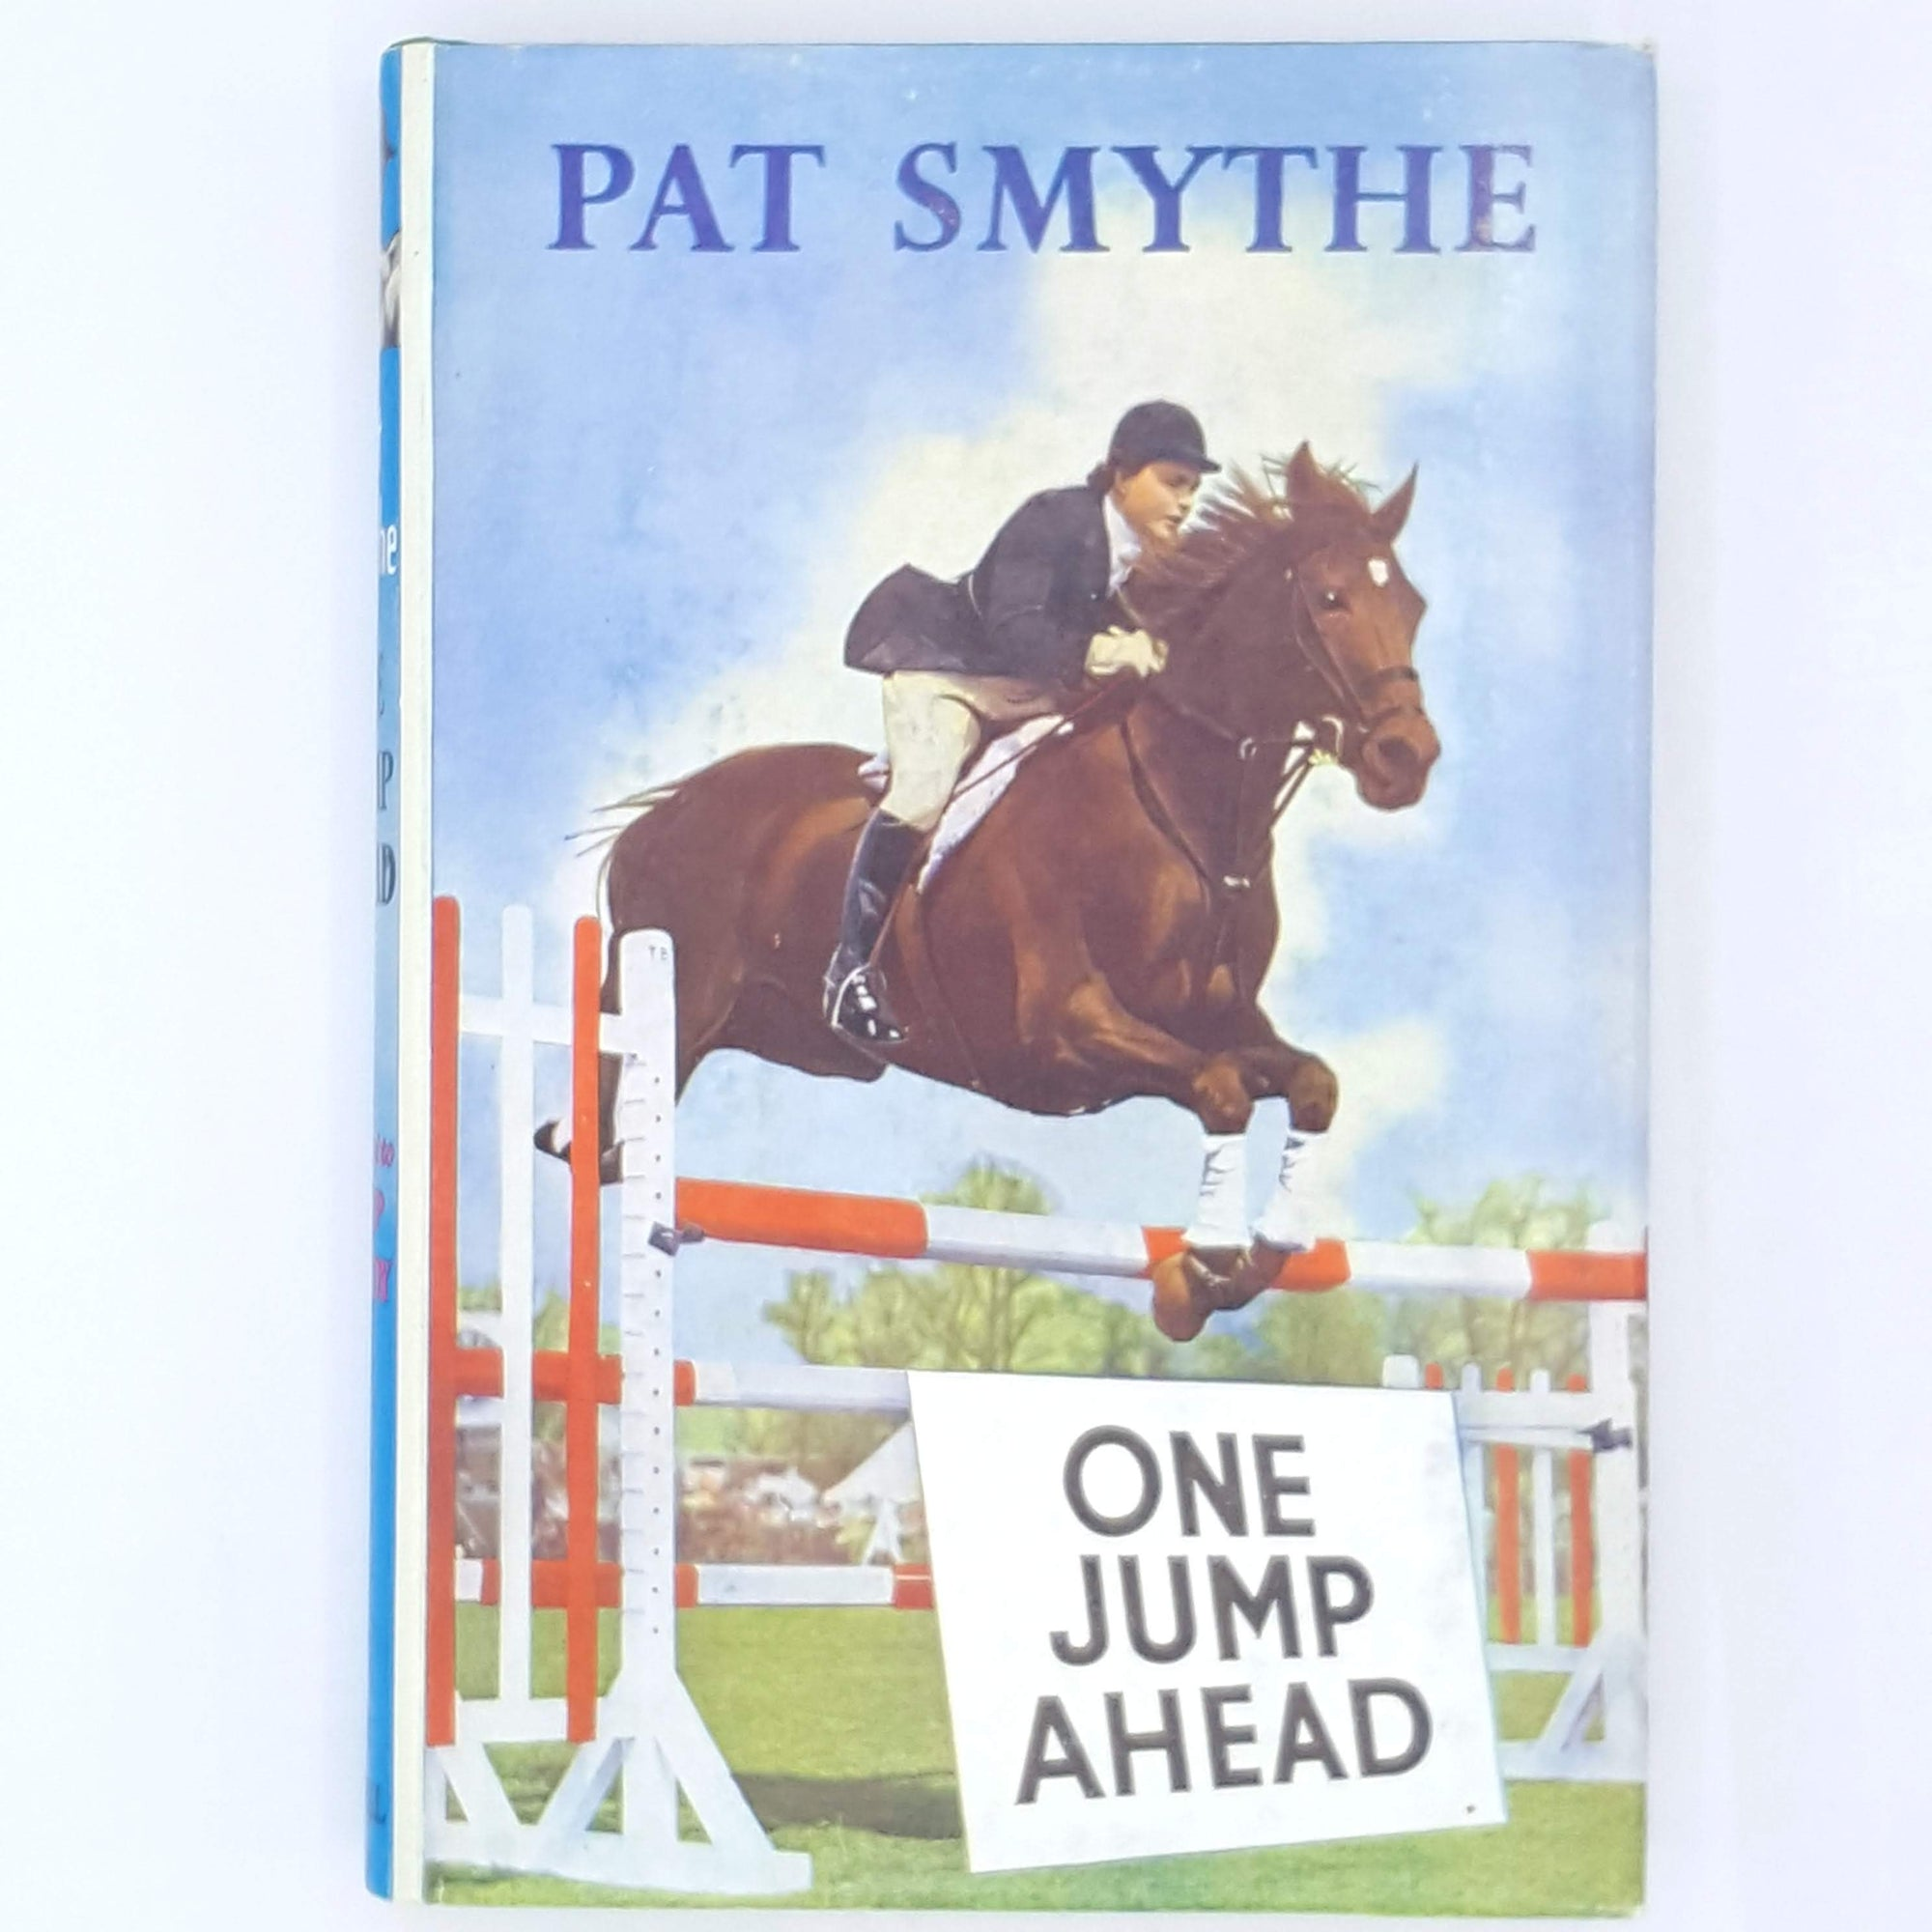 country-house-library-classic-1956-antique-books-thrift-Horses-Pat-Smythe-Cassell-patterned-old-decorative-vintage-Equestrian-One-Jump-Ahead-